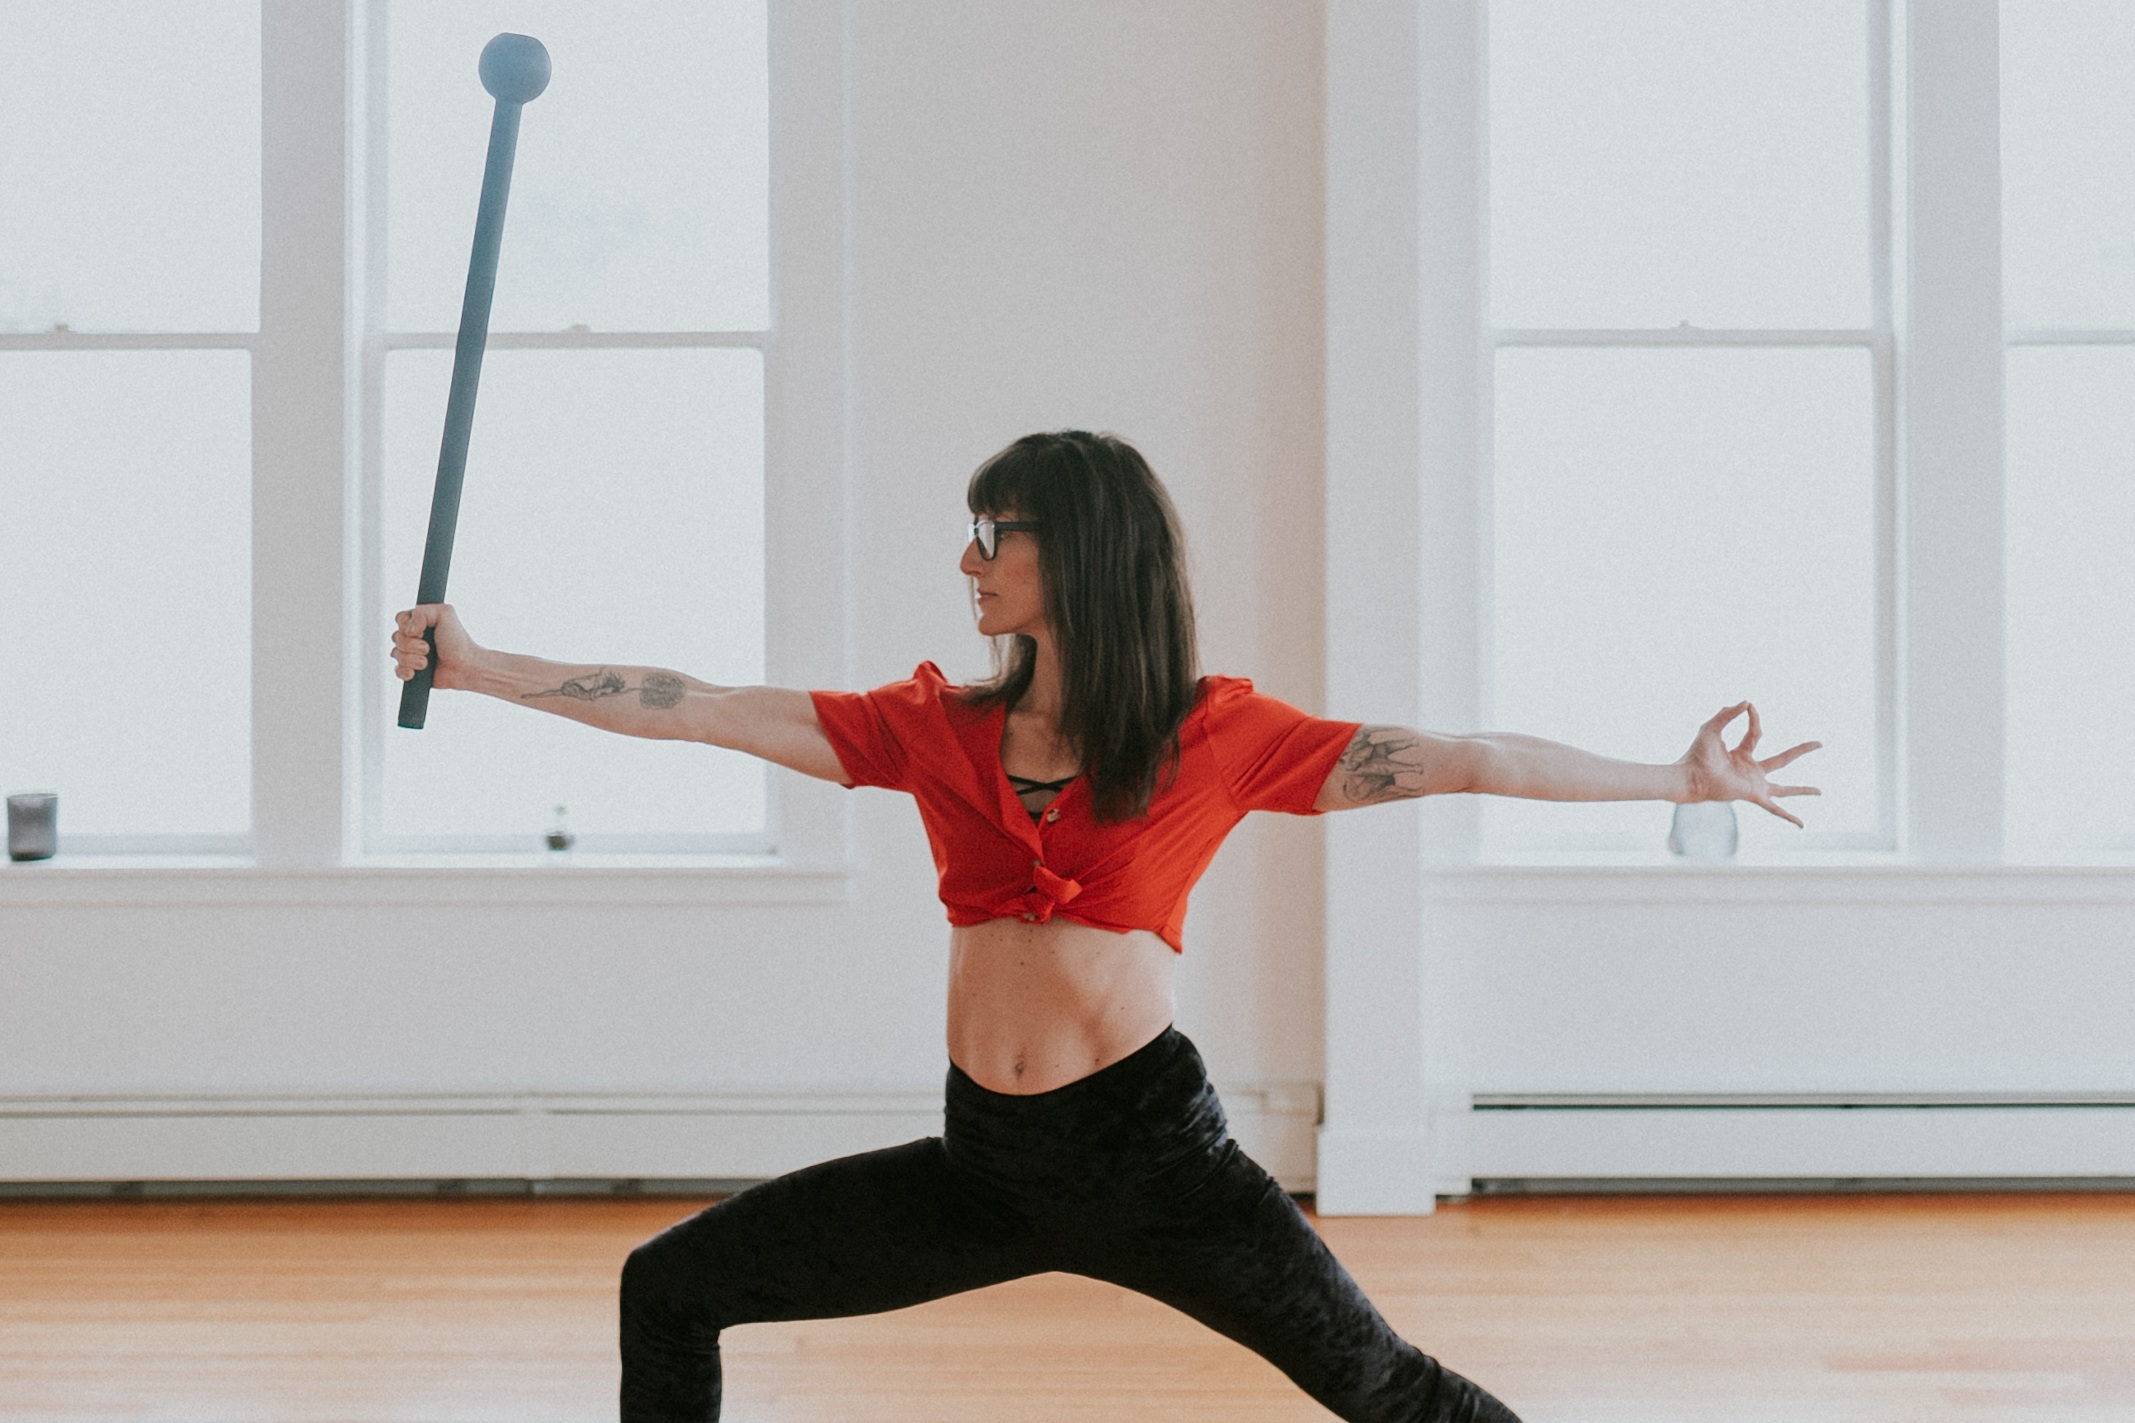 Summer Huntington loves everything Flow State. She founded the Flow Shala - unconventional training with a purpose featuring Steel Mace & RAD Roller self myofascial release tools. She directs and produces online fitness courses integrating ancient tools & modern wisdom (click link below). Summer has traveled to teach seminars for the past 6 years, and is shifting her focus on her local community integrating Flow and Corporate Wellness, as well as facilitating Flow State Campout